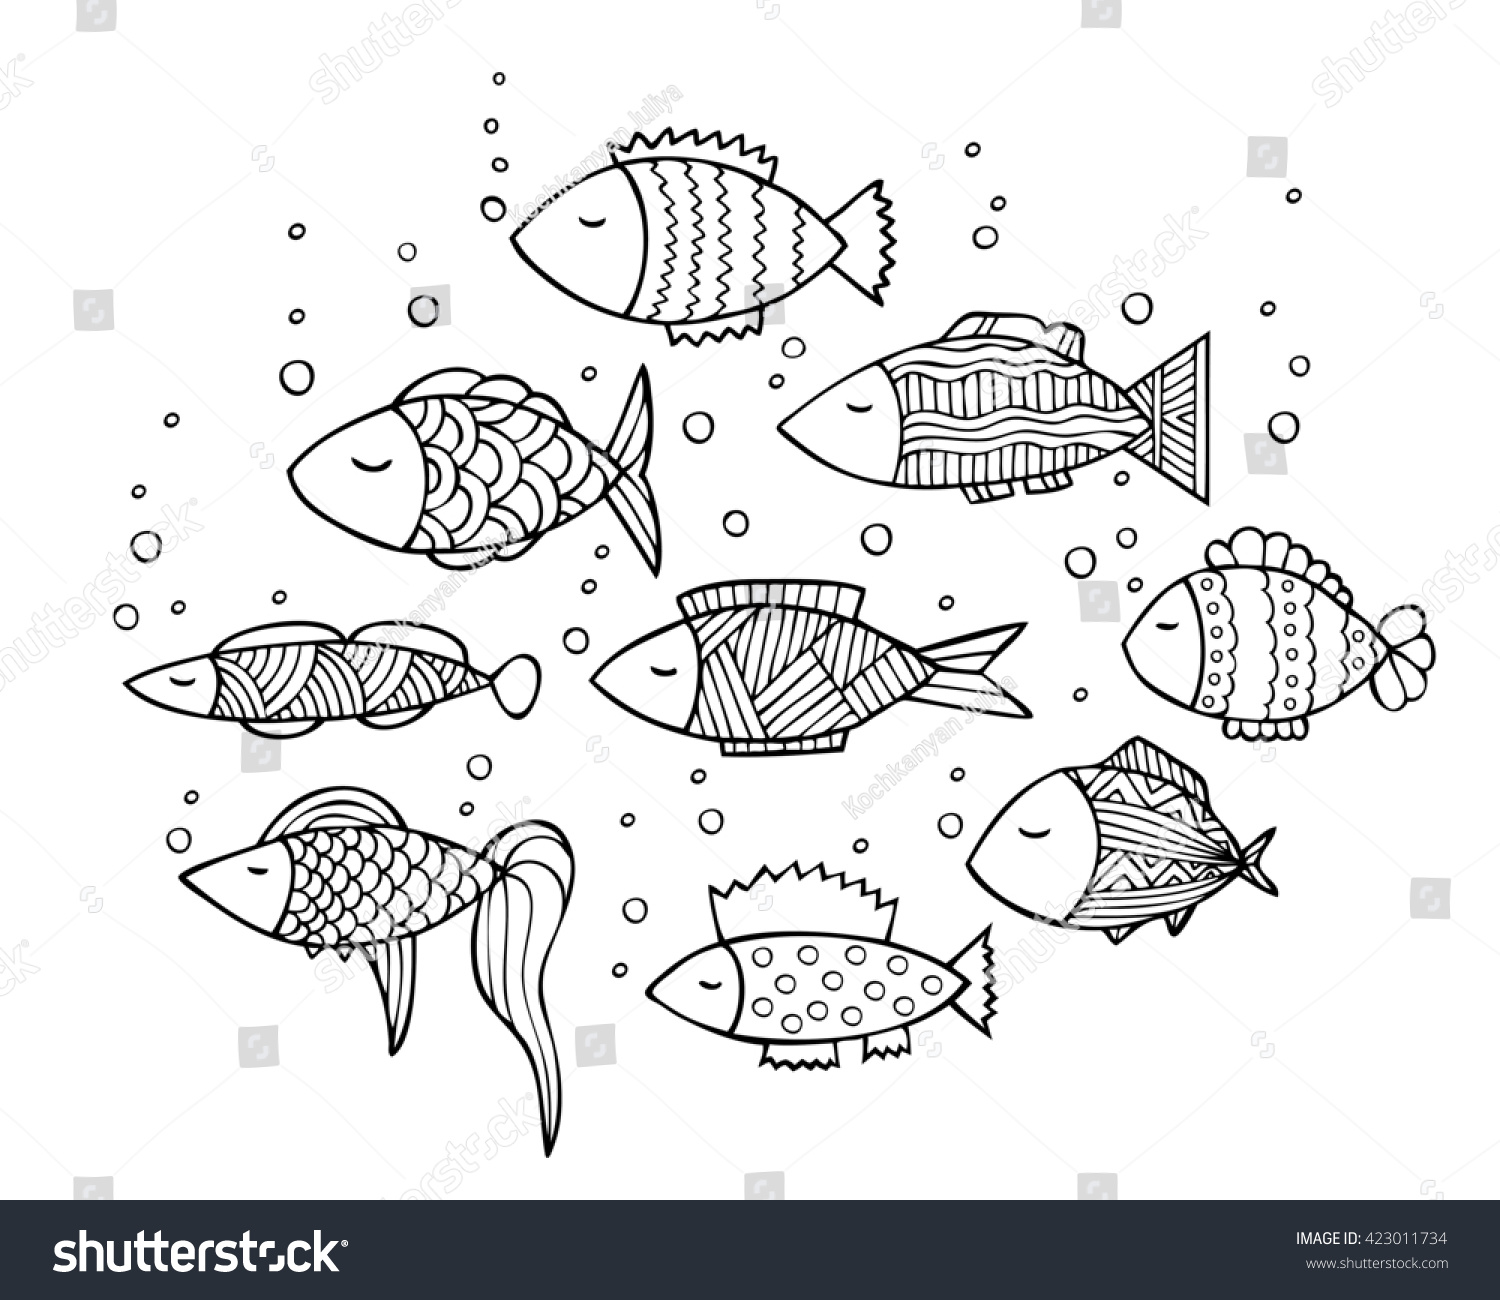 adult coloring book page design with fish coloring book page for adult illustration in - Fish Coloring Book